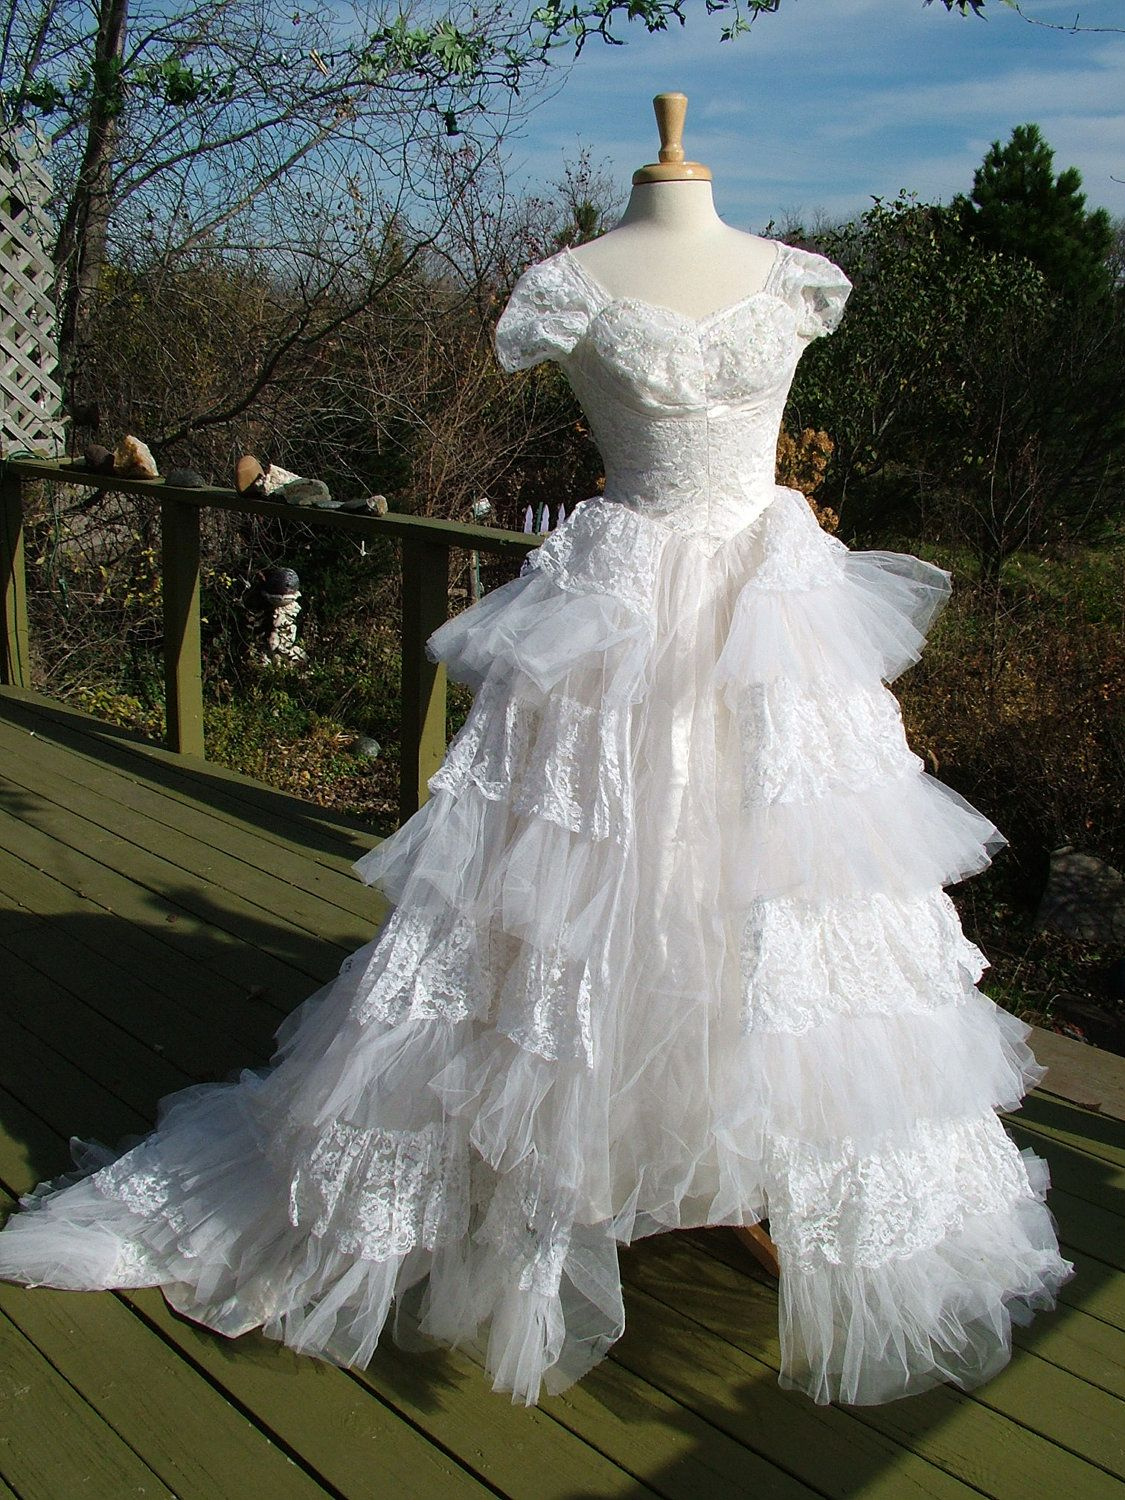 1940s 1950s Vintage wedding Dress bridal gown layers of